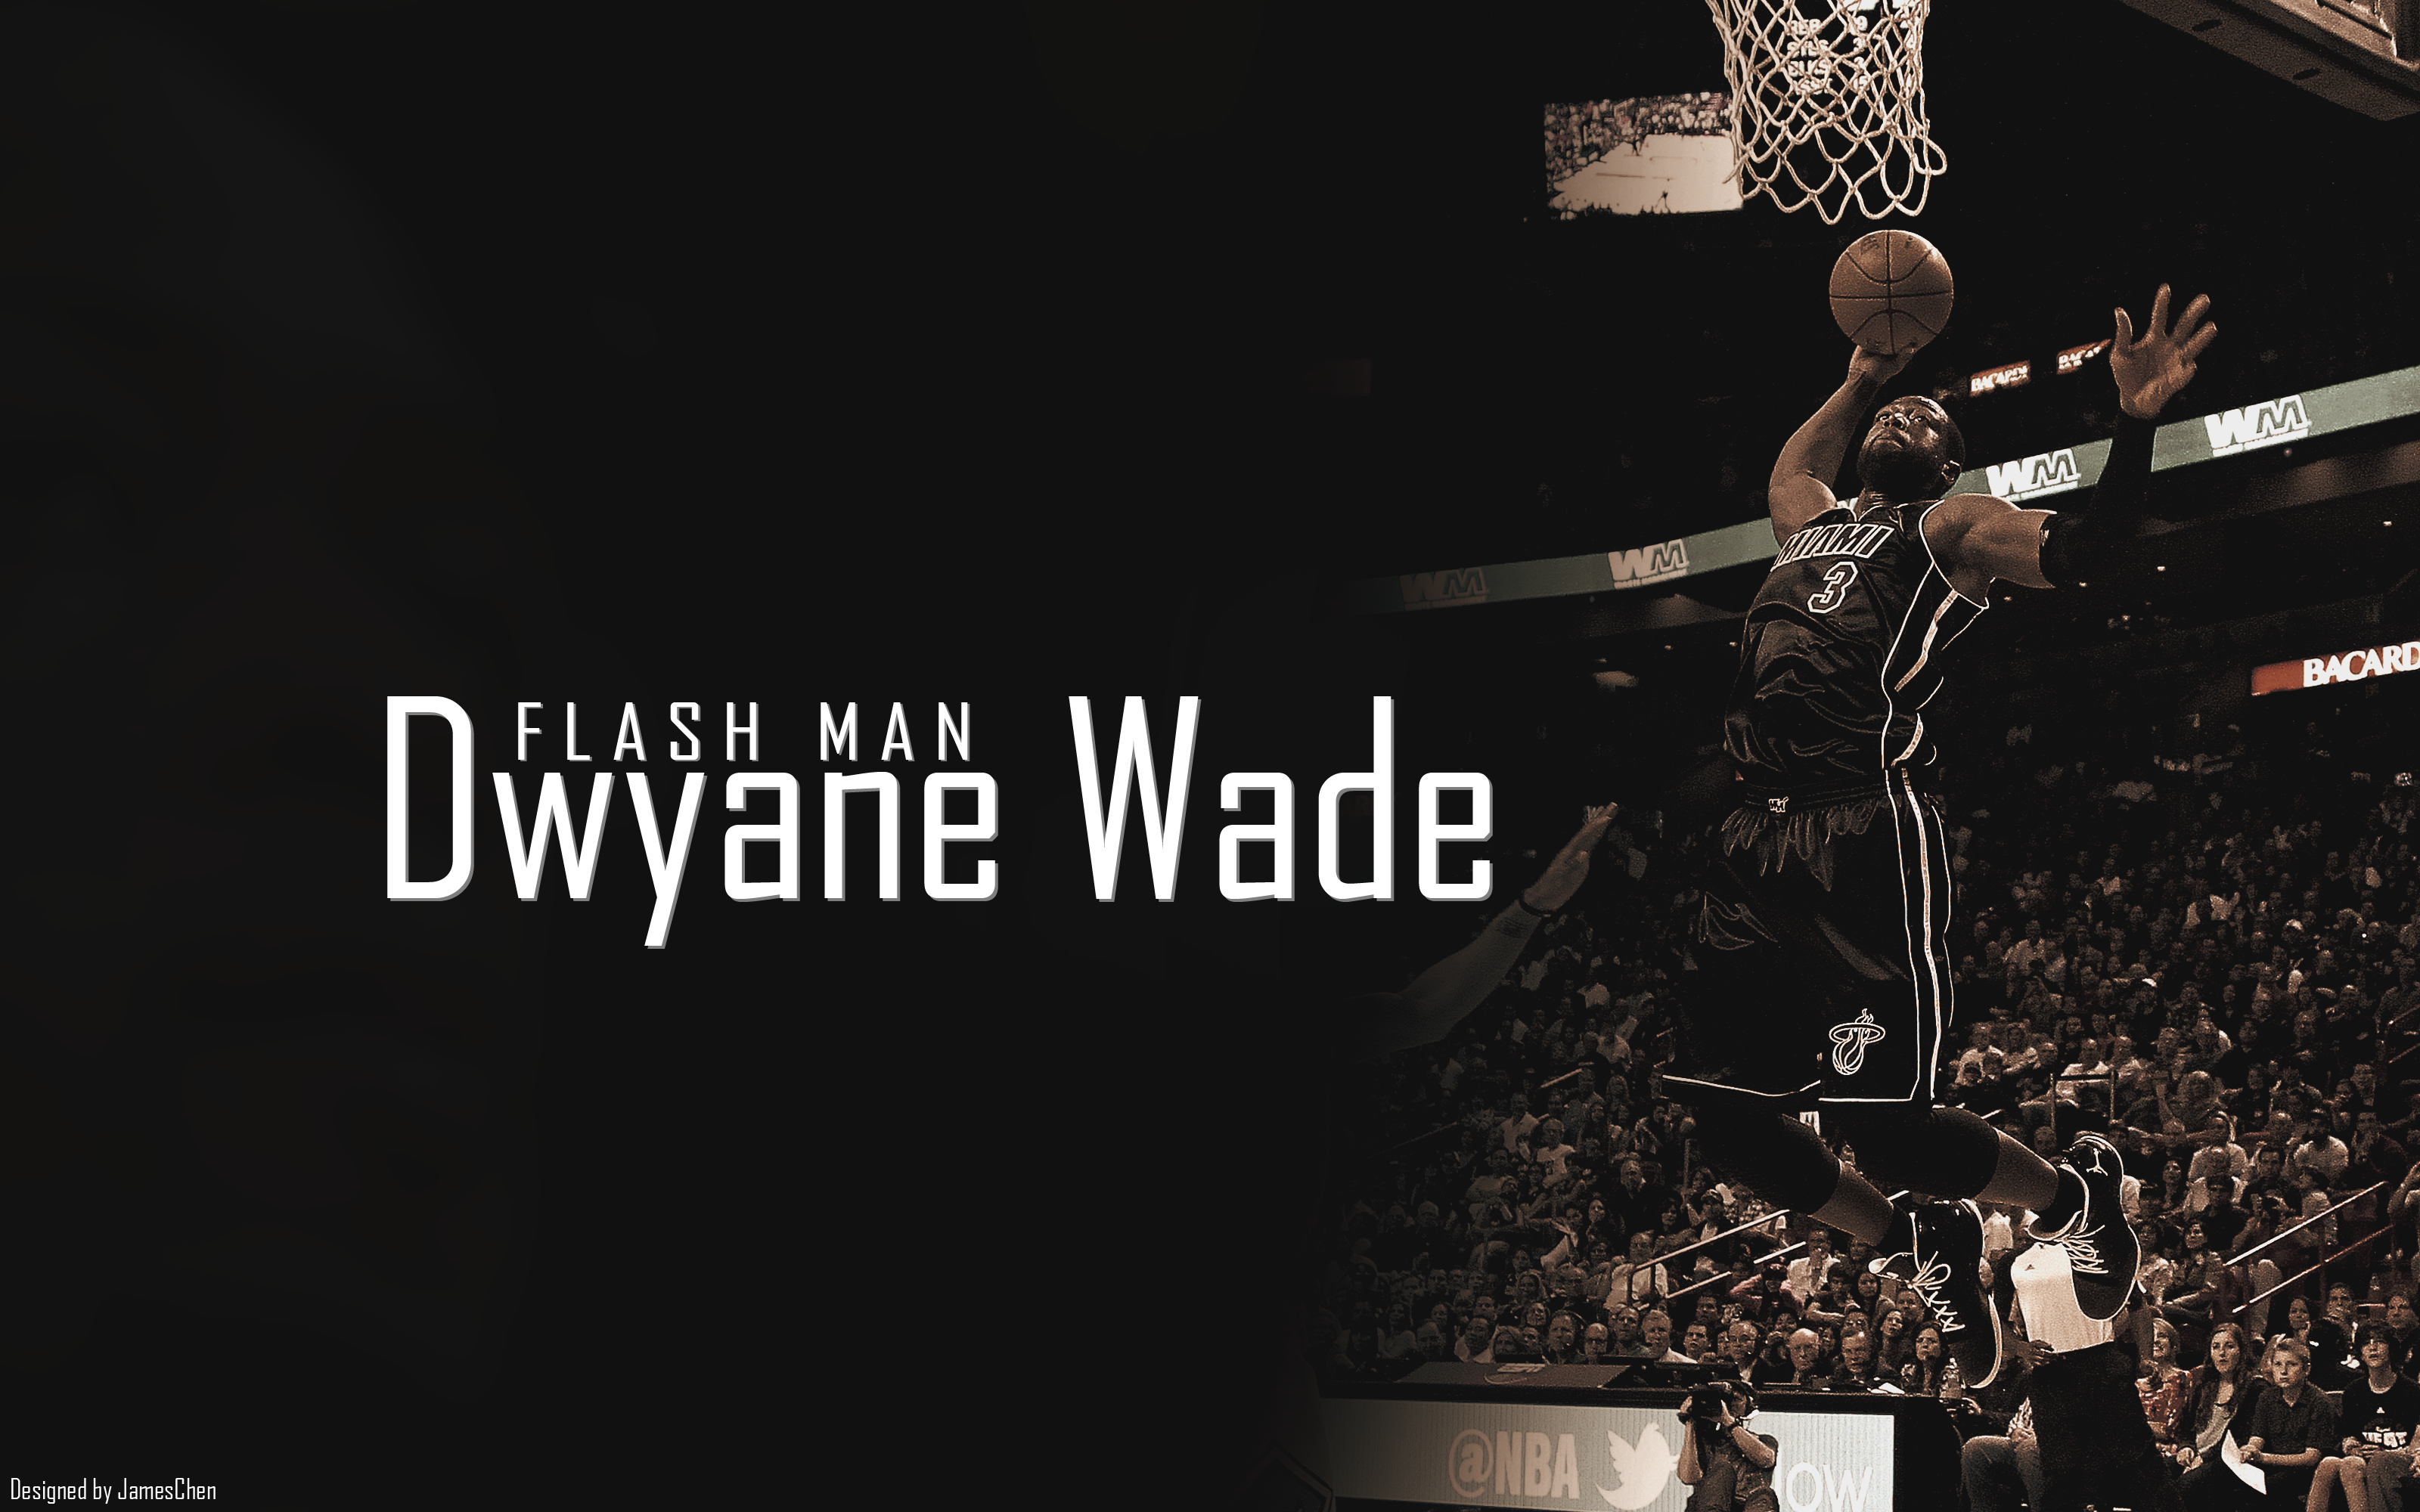 3200x2000 px Wade Computer Wallpapers, B.SCB